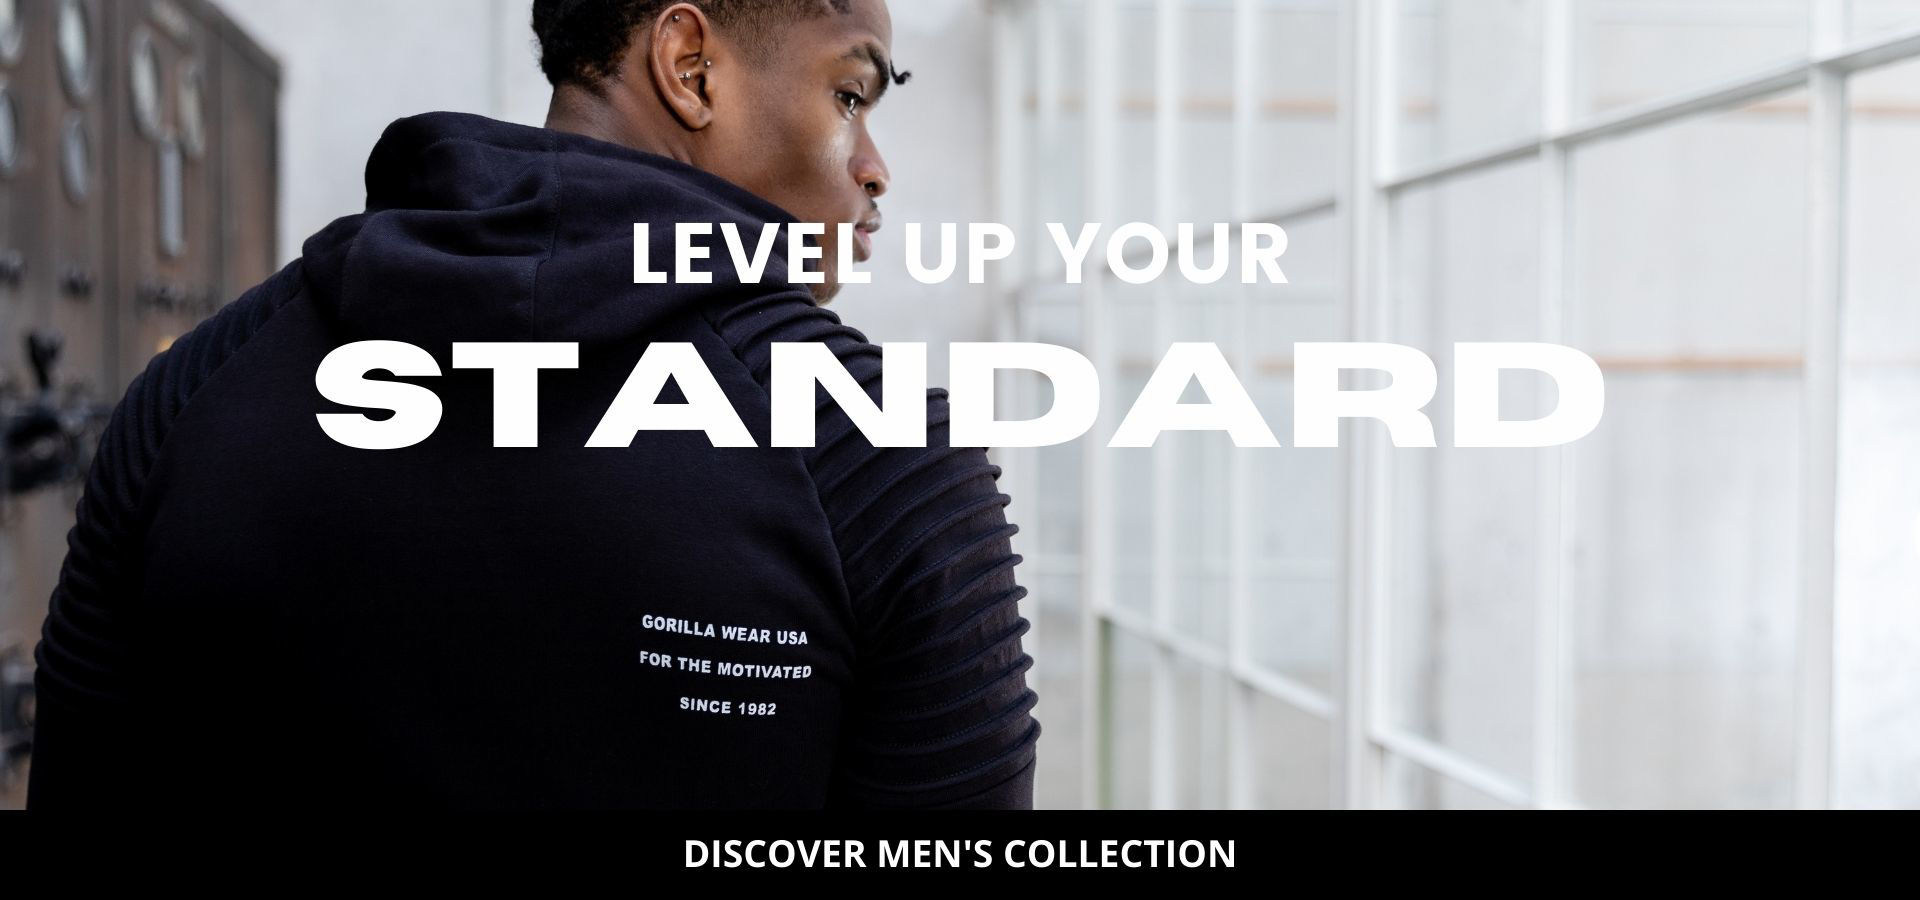 Latest men's collection for gym wear and street wear .